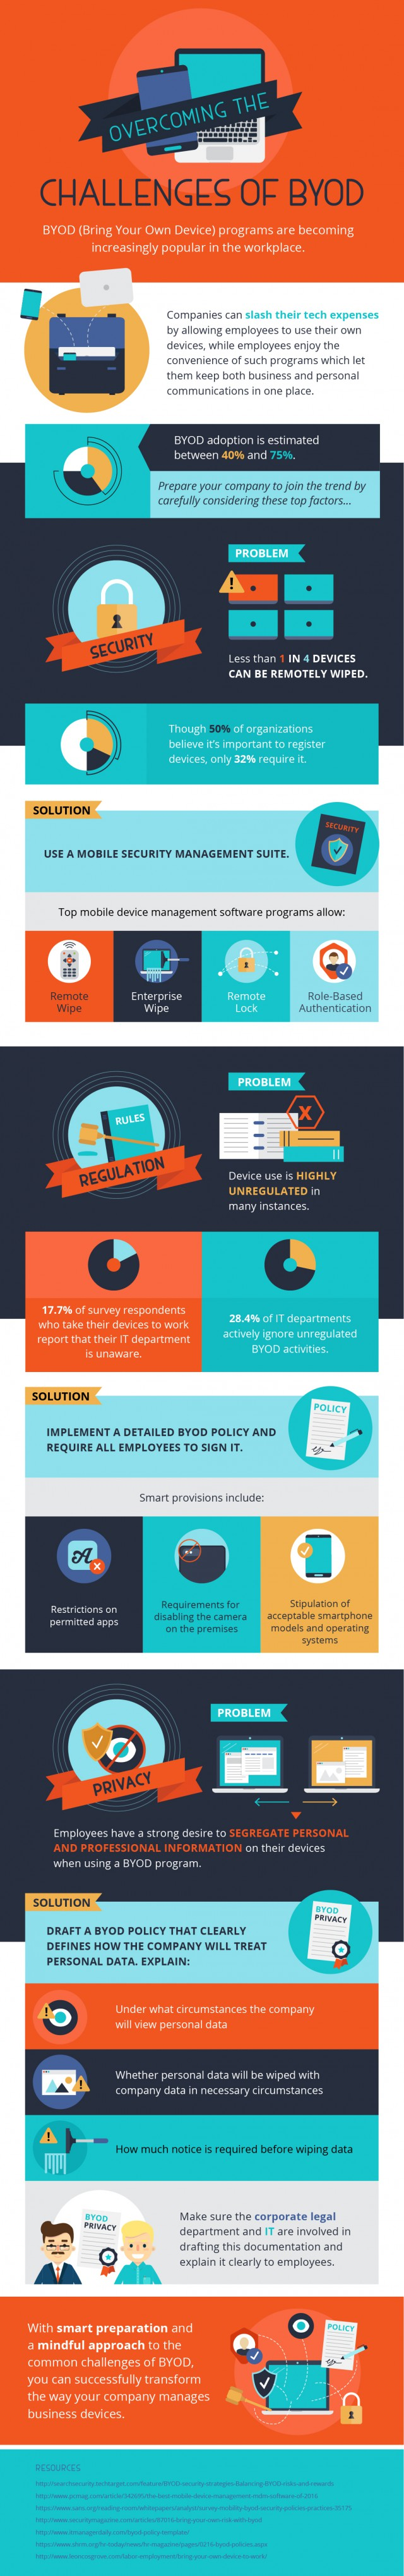 BYOD Challenges Infographic